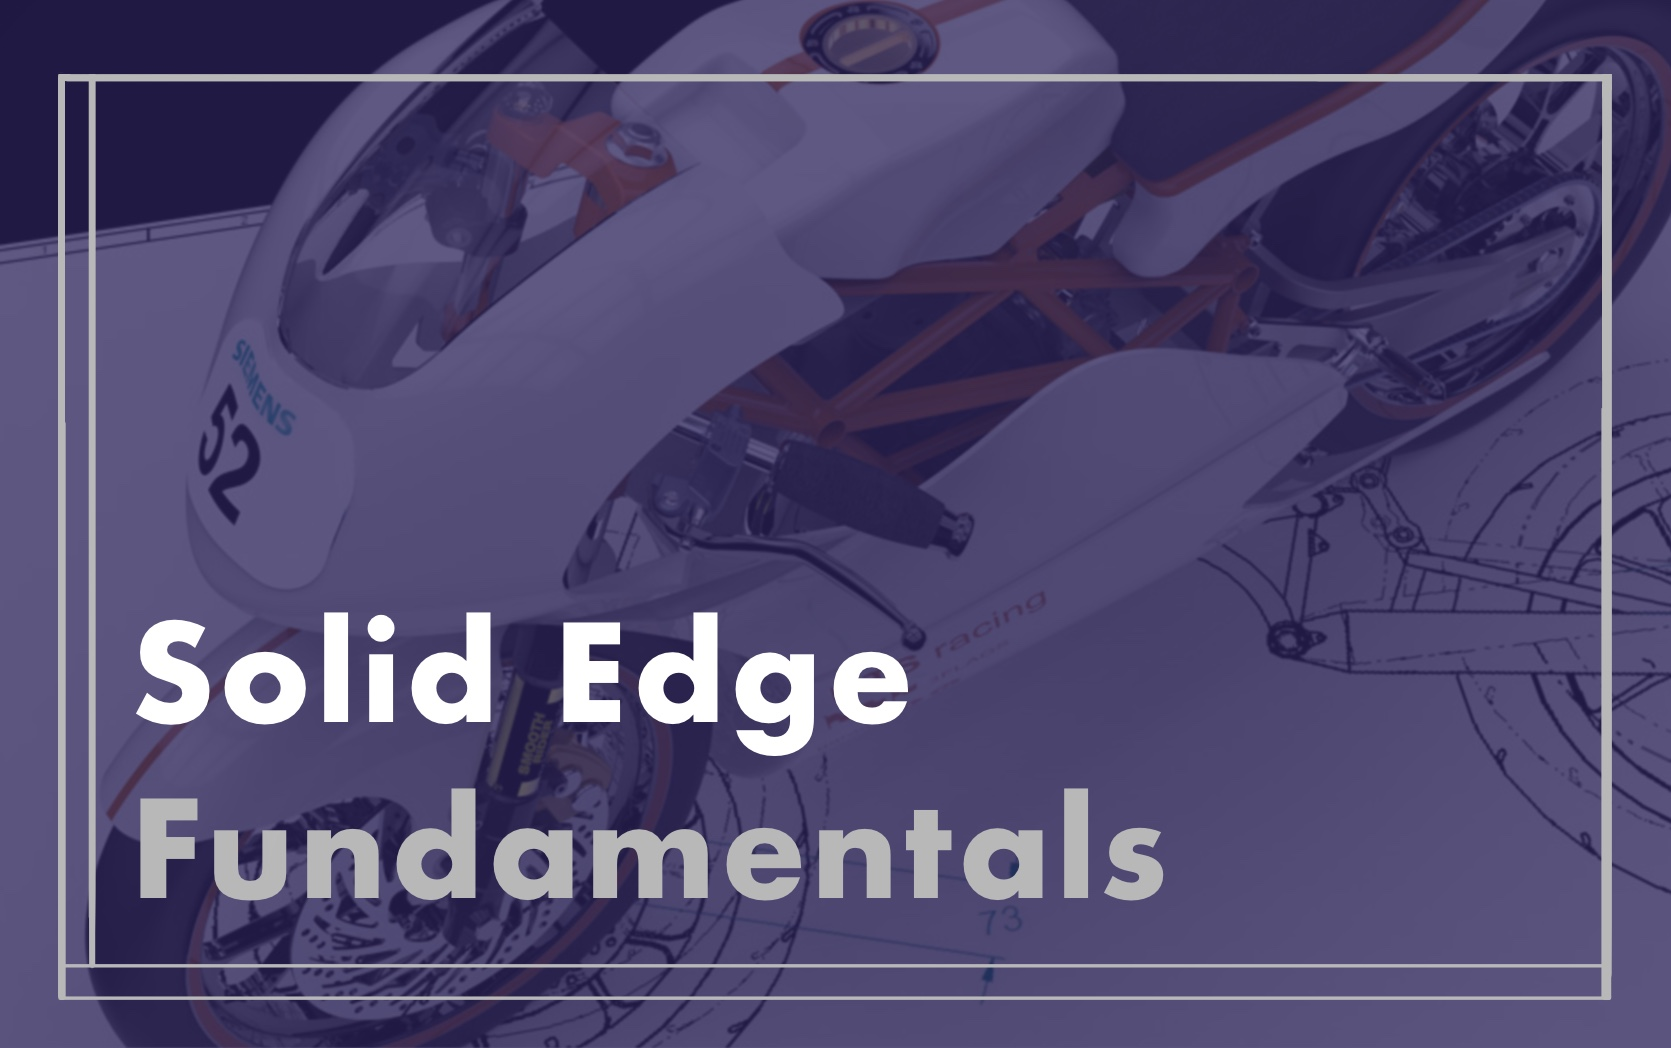 Solid Edge Fundamentals